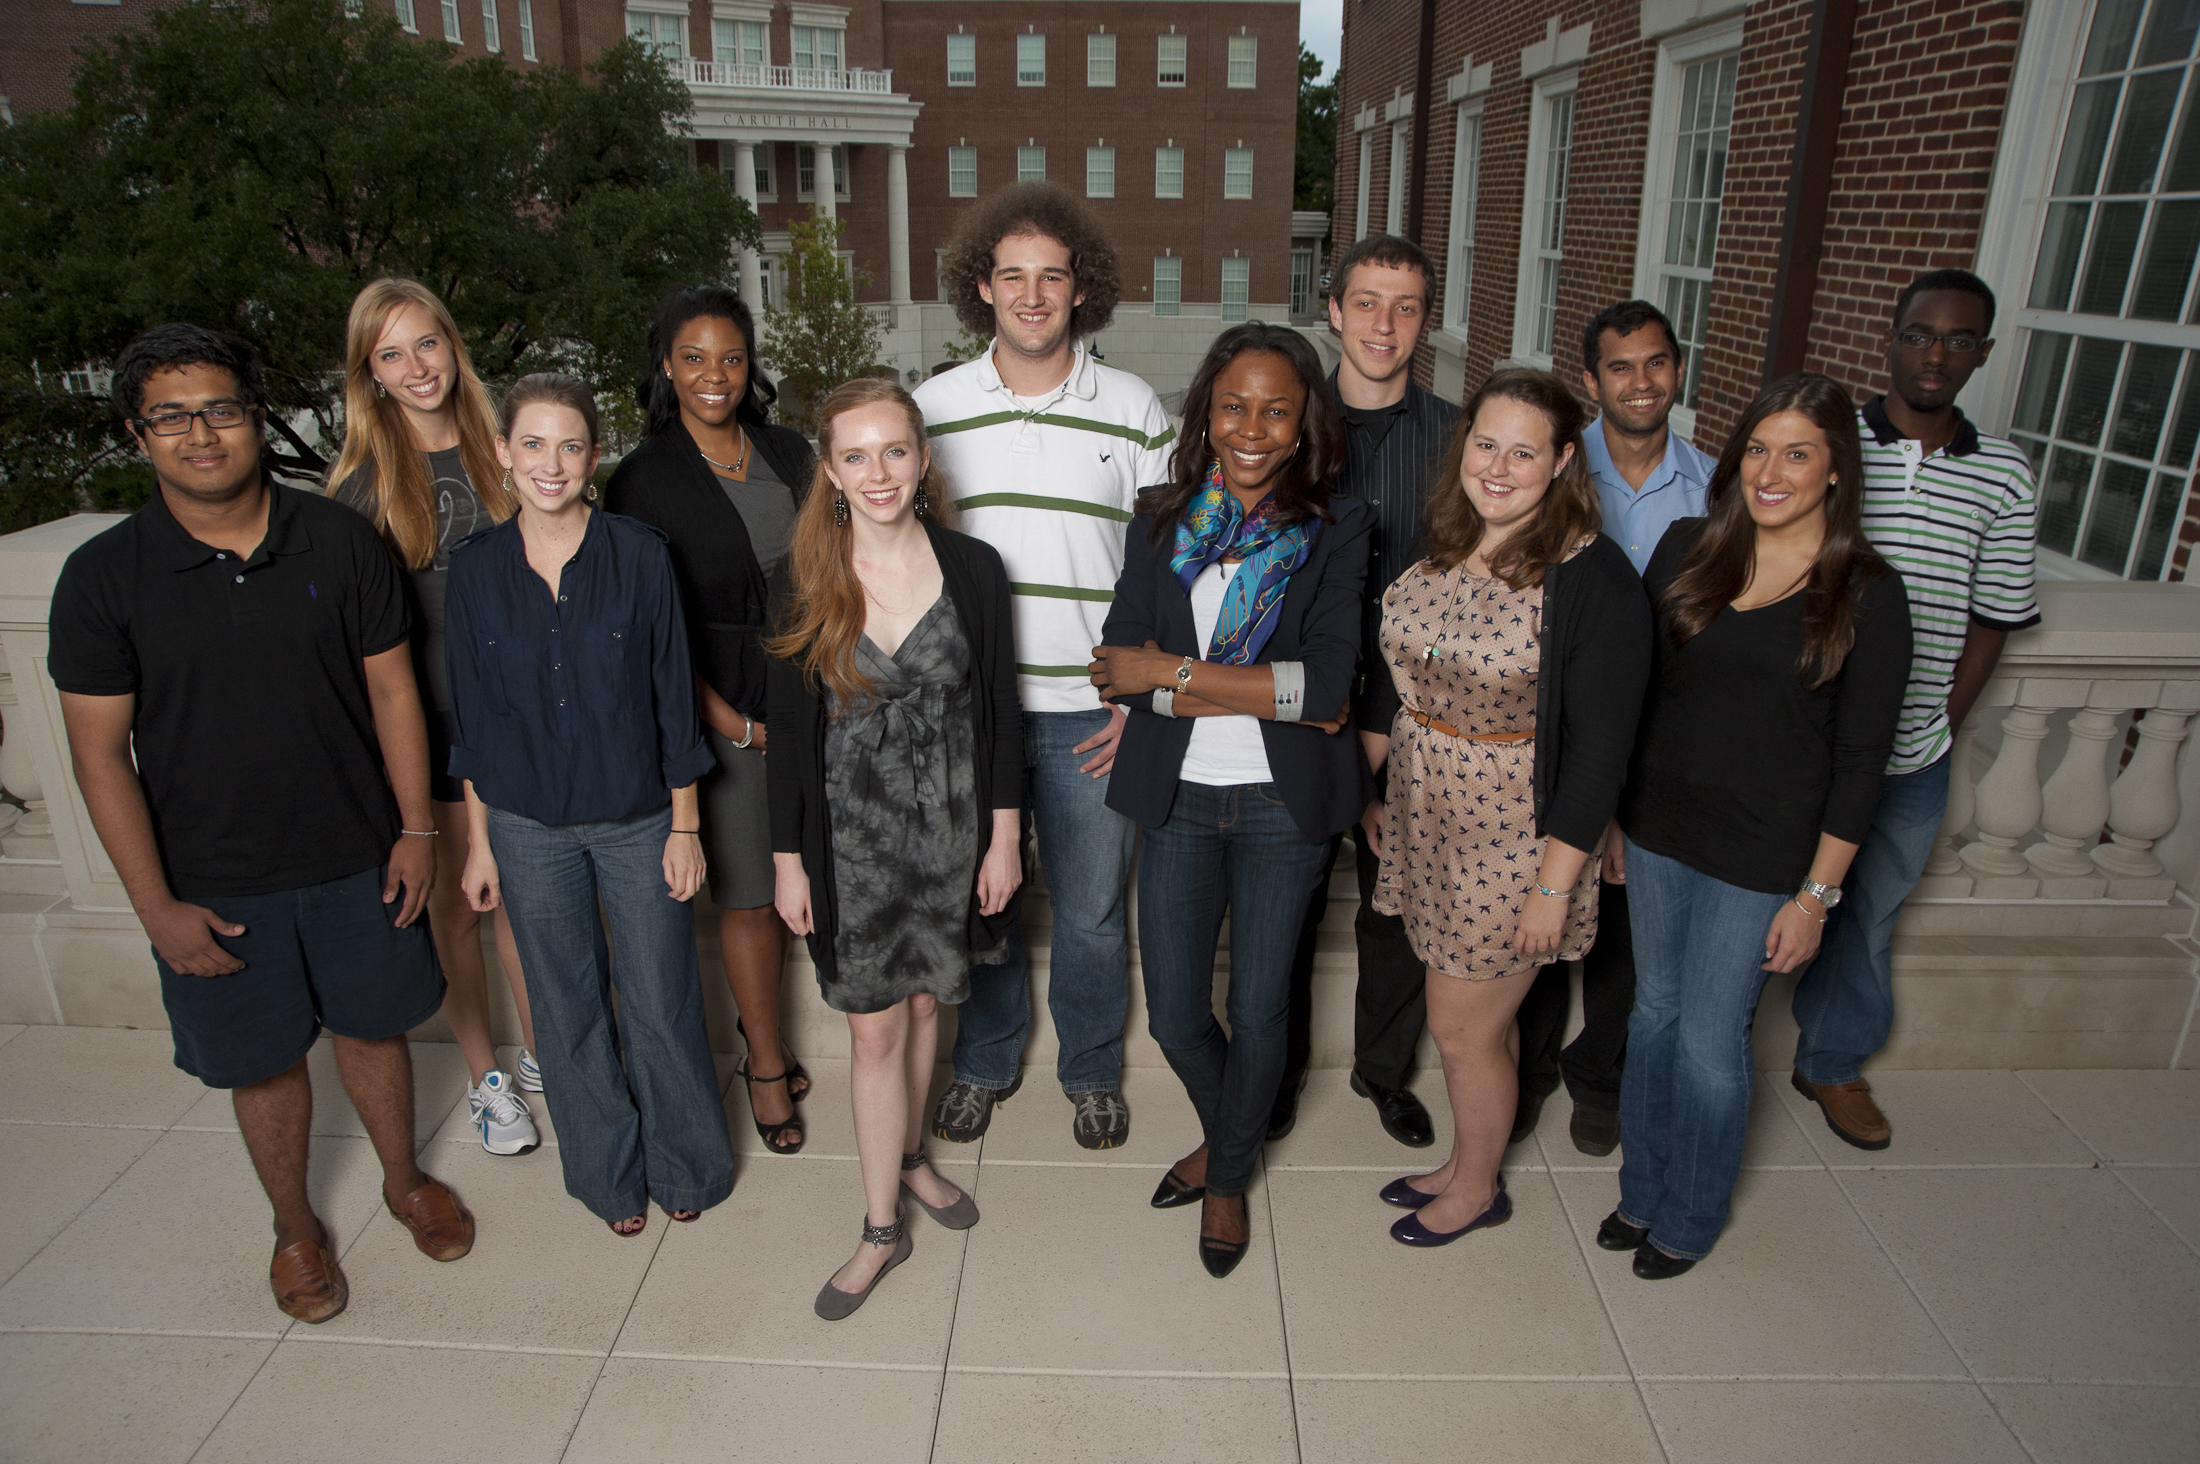 Carole & Jim Young Fellows are, from left to right, SMU students Rahfin Faruk, Julie Kangas, Andress Boggs, Alicia Booker, Moria Momsen, Brandon Lazarus, Harriet Atsegbua, Roman Stolyarov, Katelyn Hall, Krishanu Sengupta, Andrea Netti and Bre'Shard Busby. Not pictured is Seth Dennis.